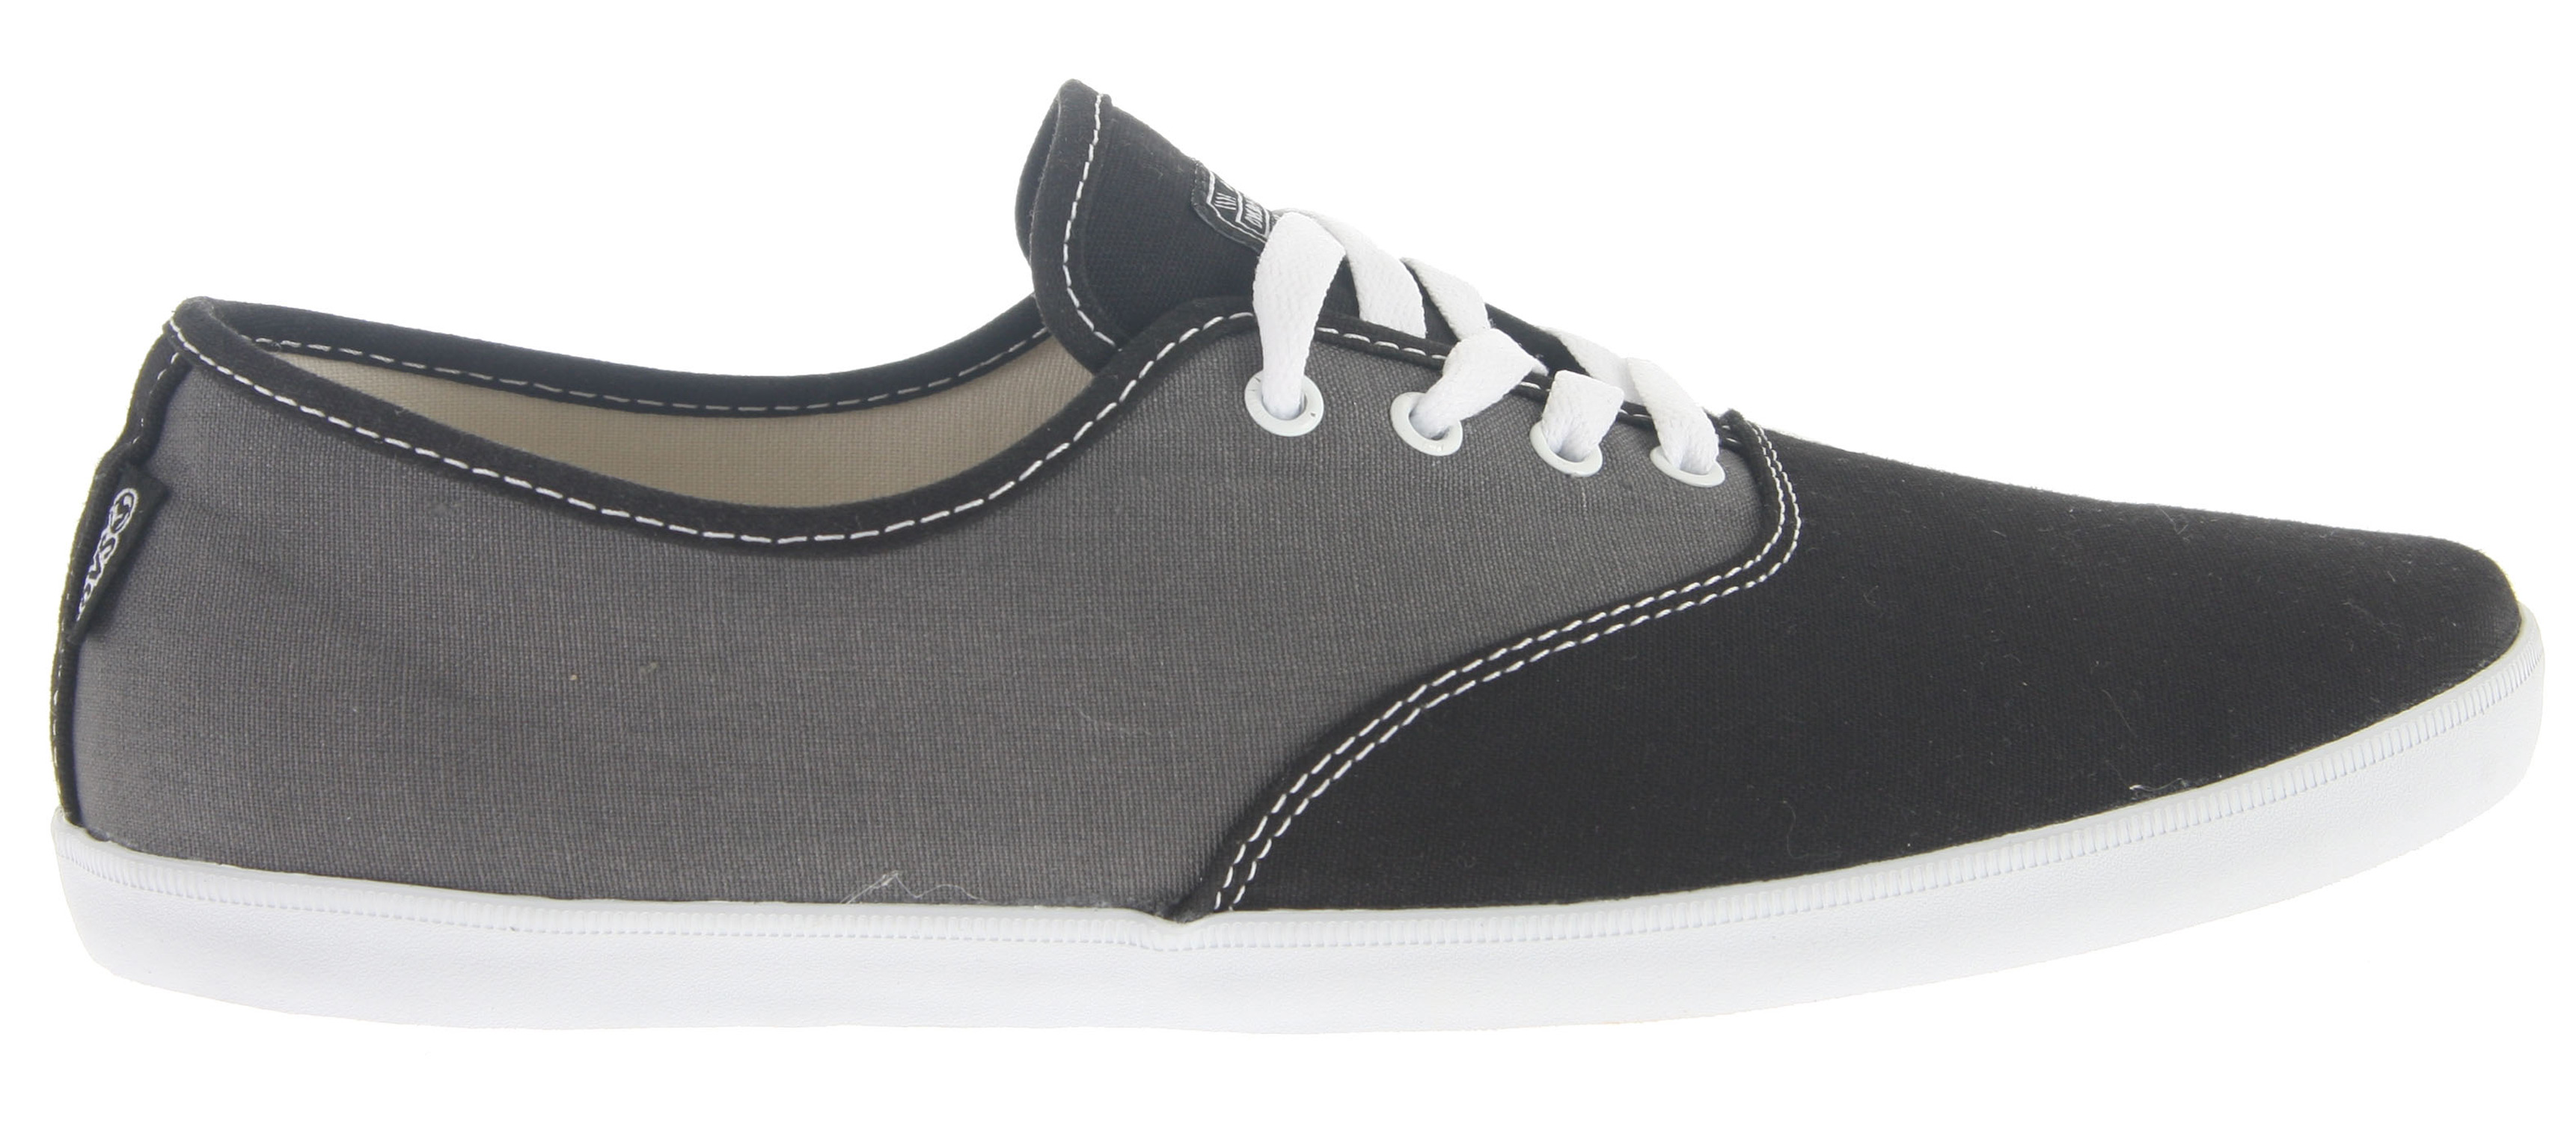 Skateboard Key Features of the DVS Vino Skate Shoes: A classic plimsoll Non-slip vulcanized outsole. - $25.95